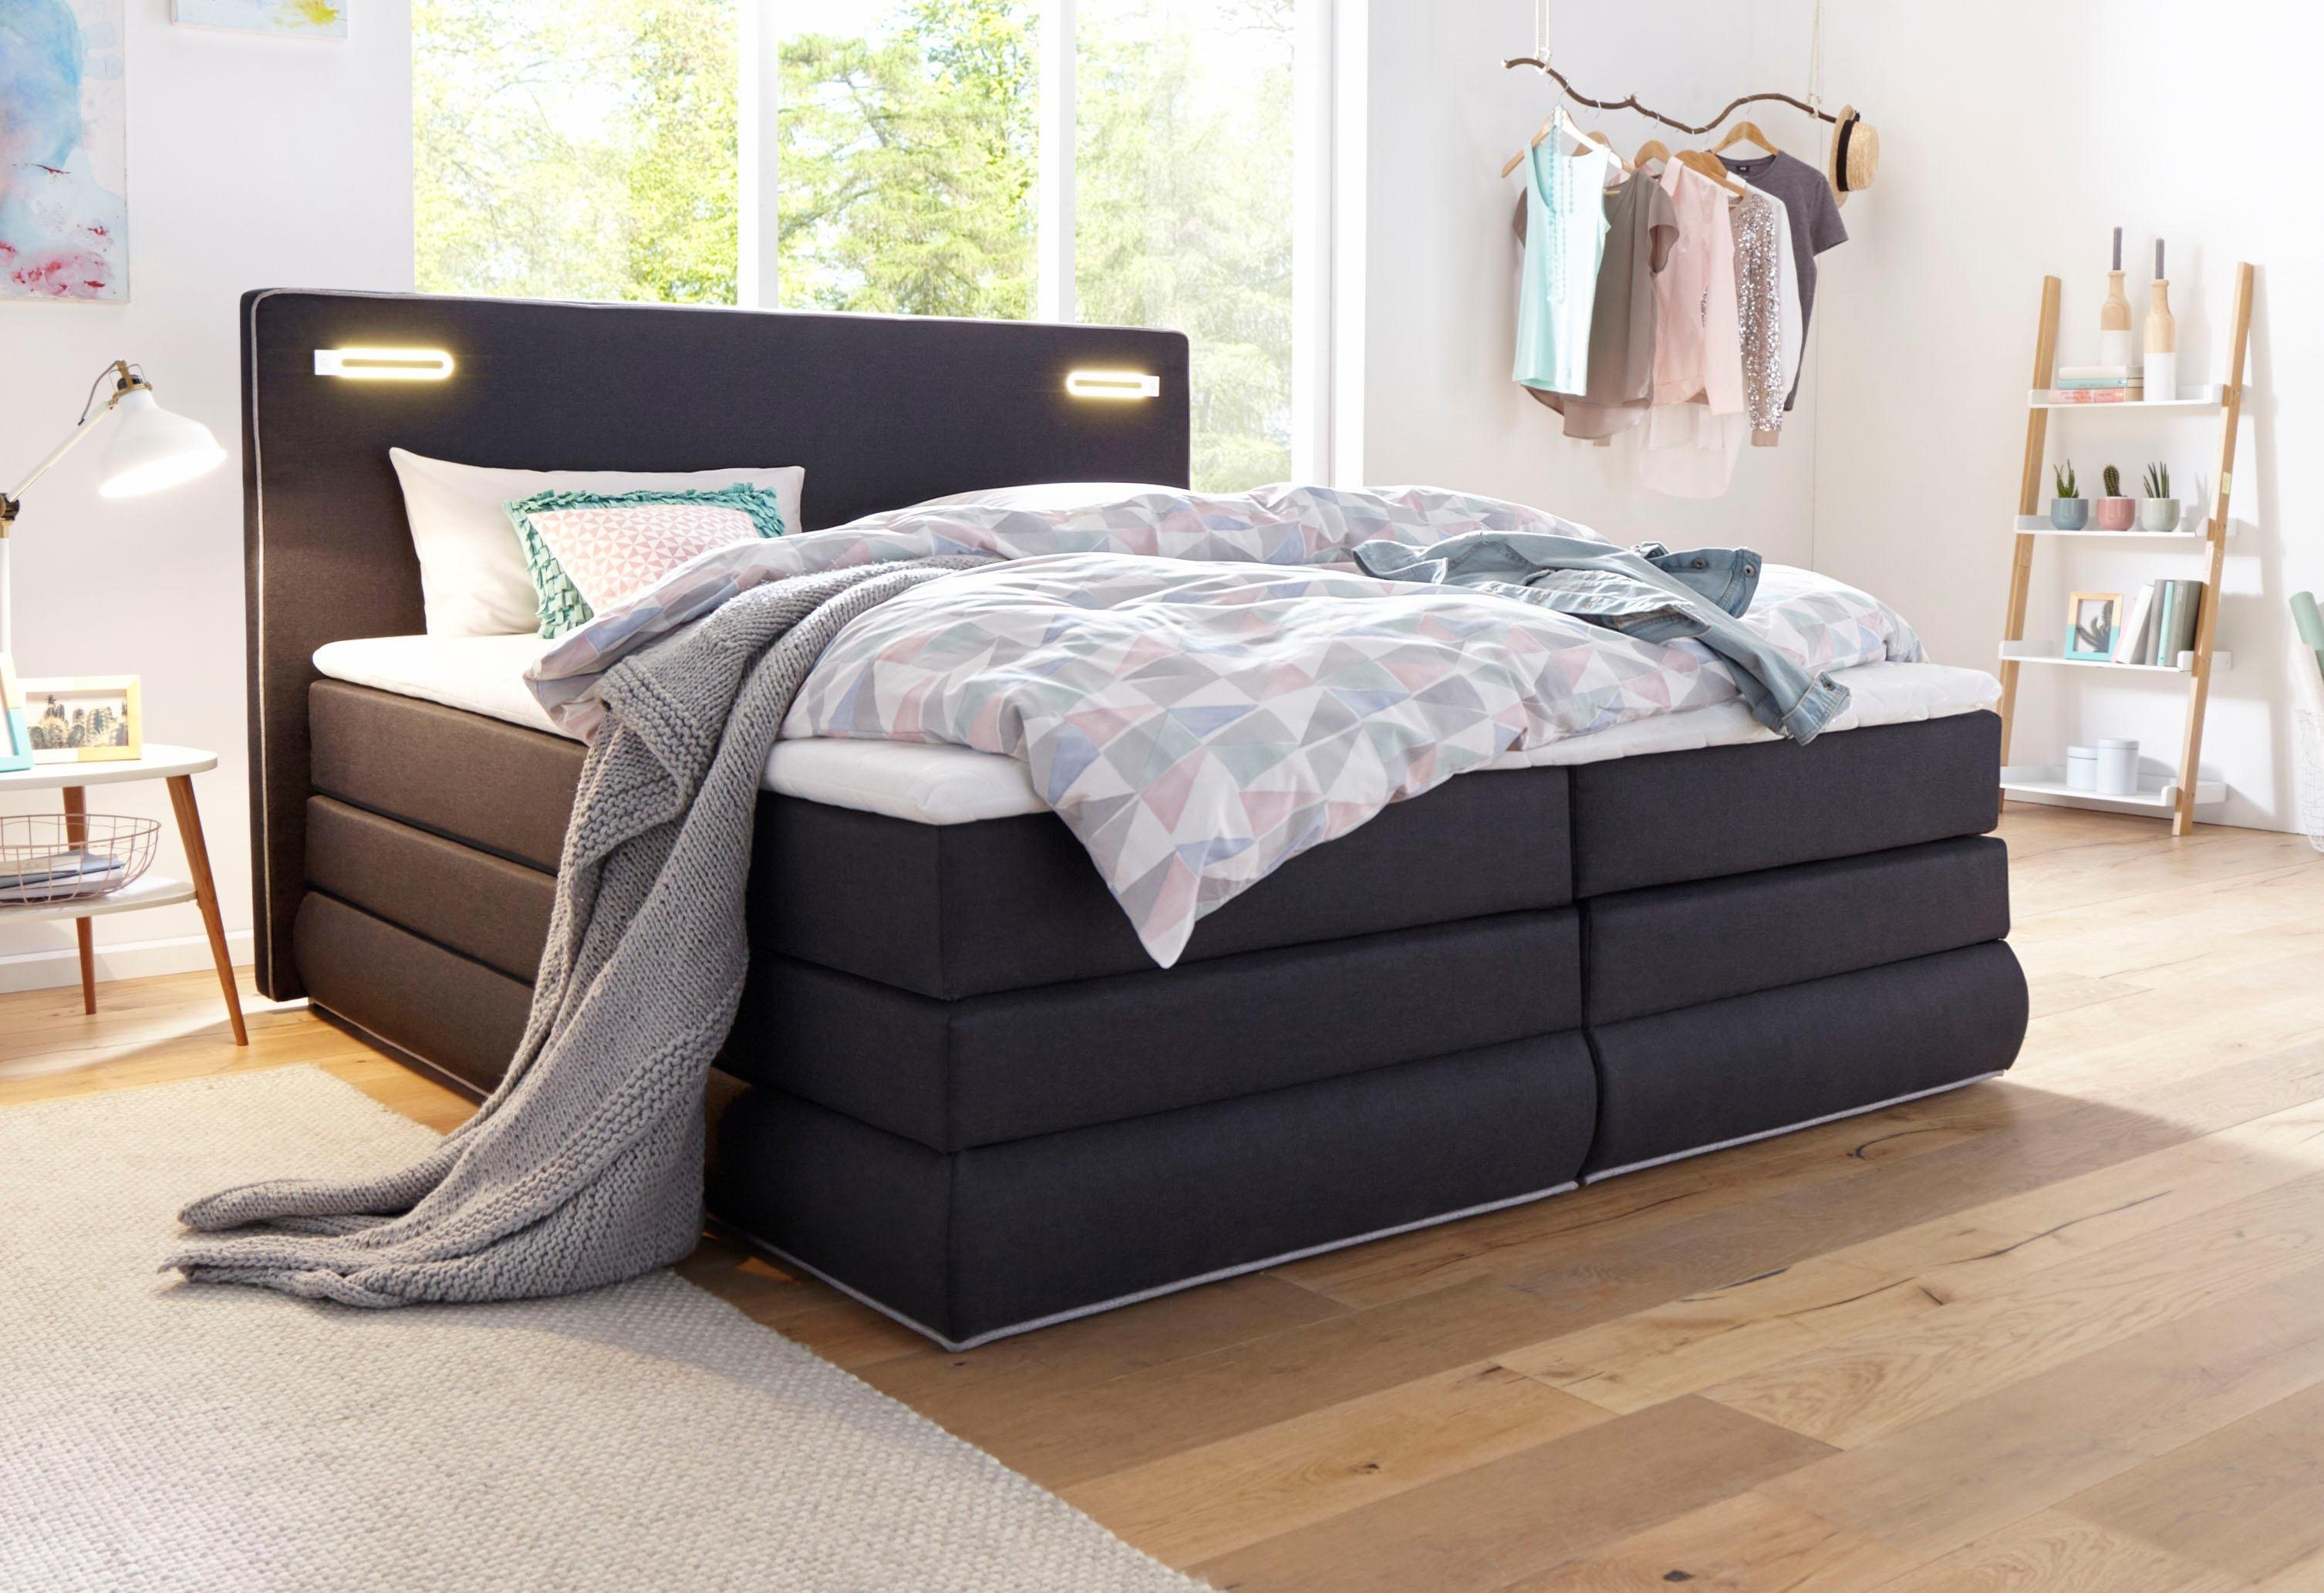 60 sparen boxspringbetten im angebot cherry m bel. Black Bedroom Furniture Sets. Home Design Ideas